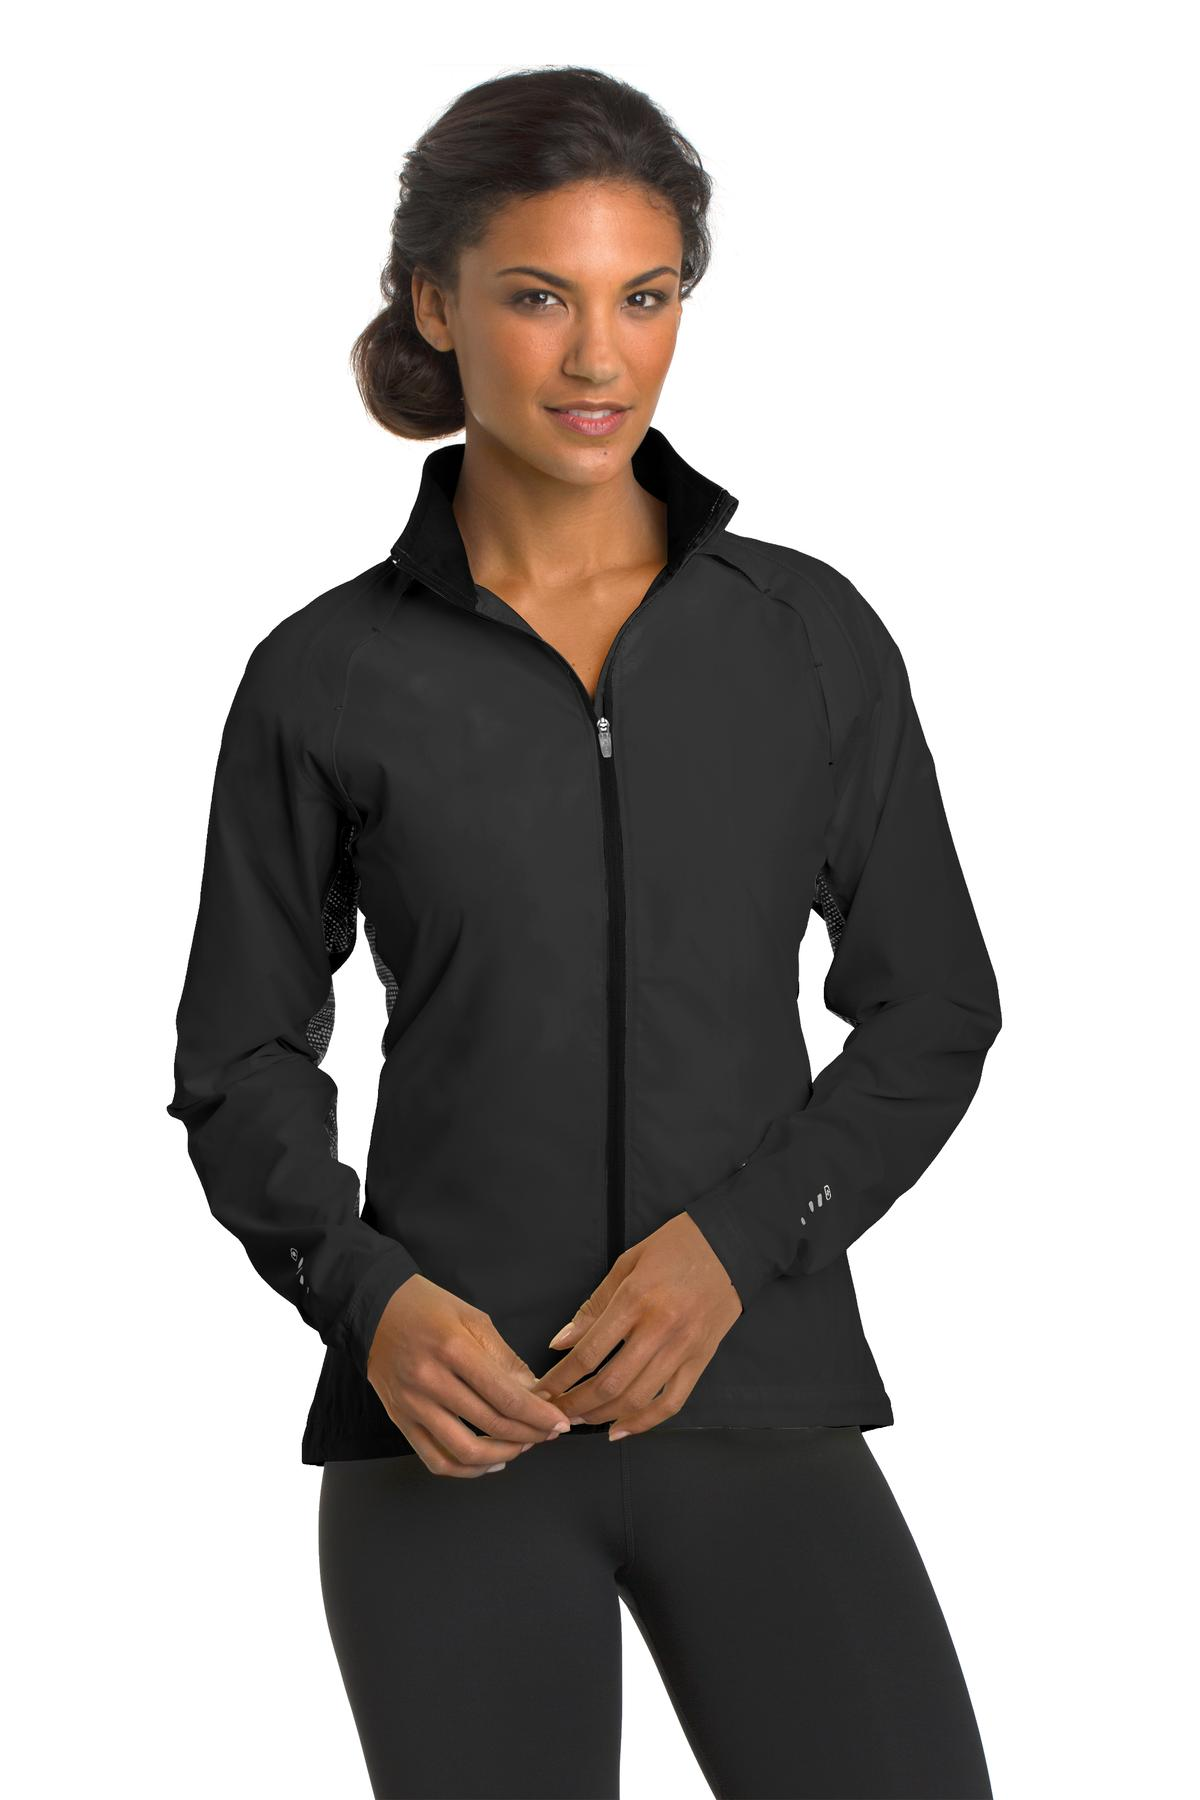 OGIO  LOE710 - ENDURANCE Ladies Velocity Jacket